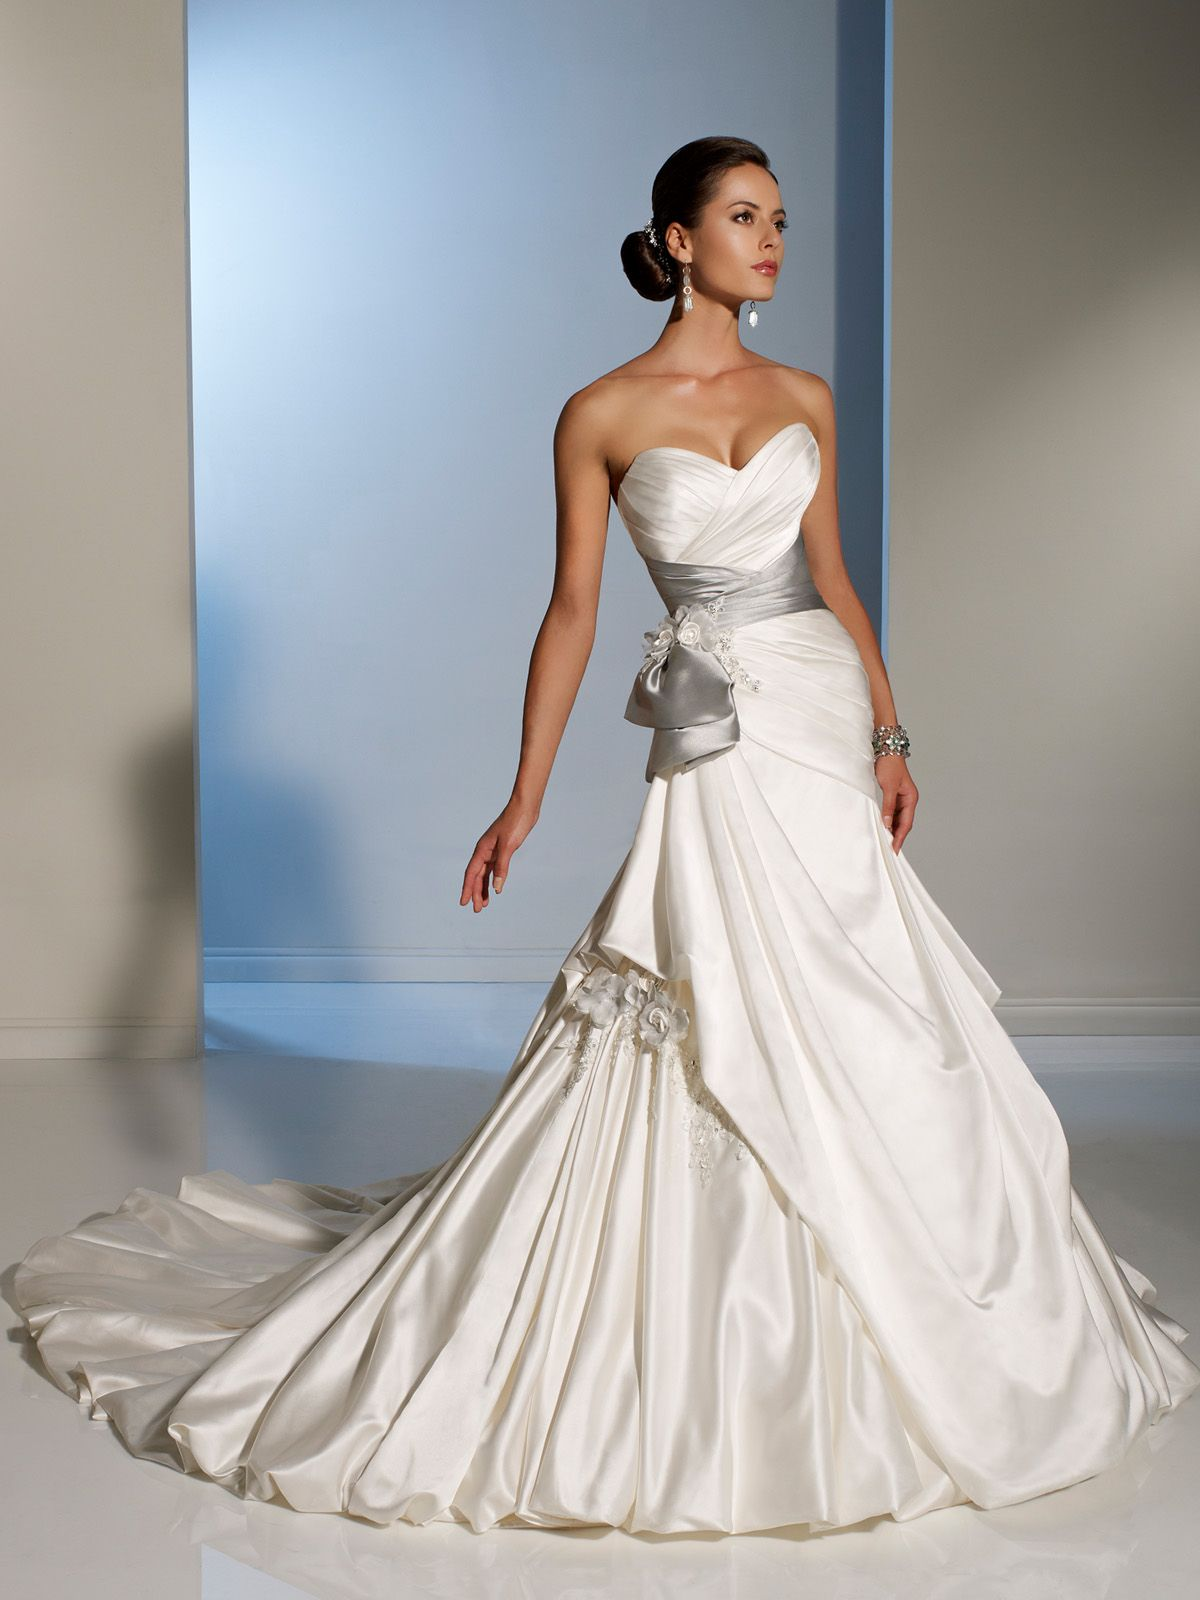 Weddingdress Weddinggown Lace Satin Tulle Elegance Unusual Unconventional Princessgown Princess Sophia Tolli More On